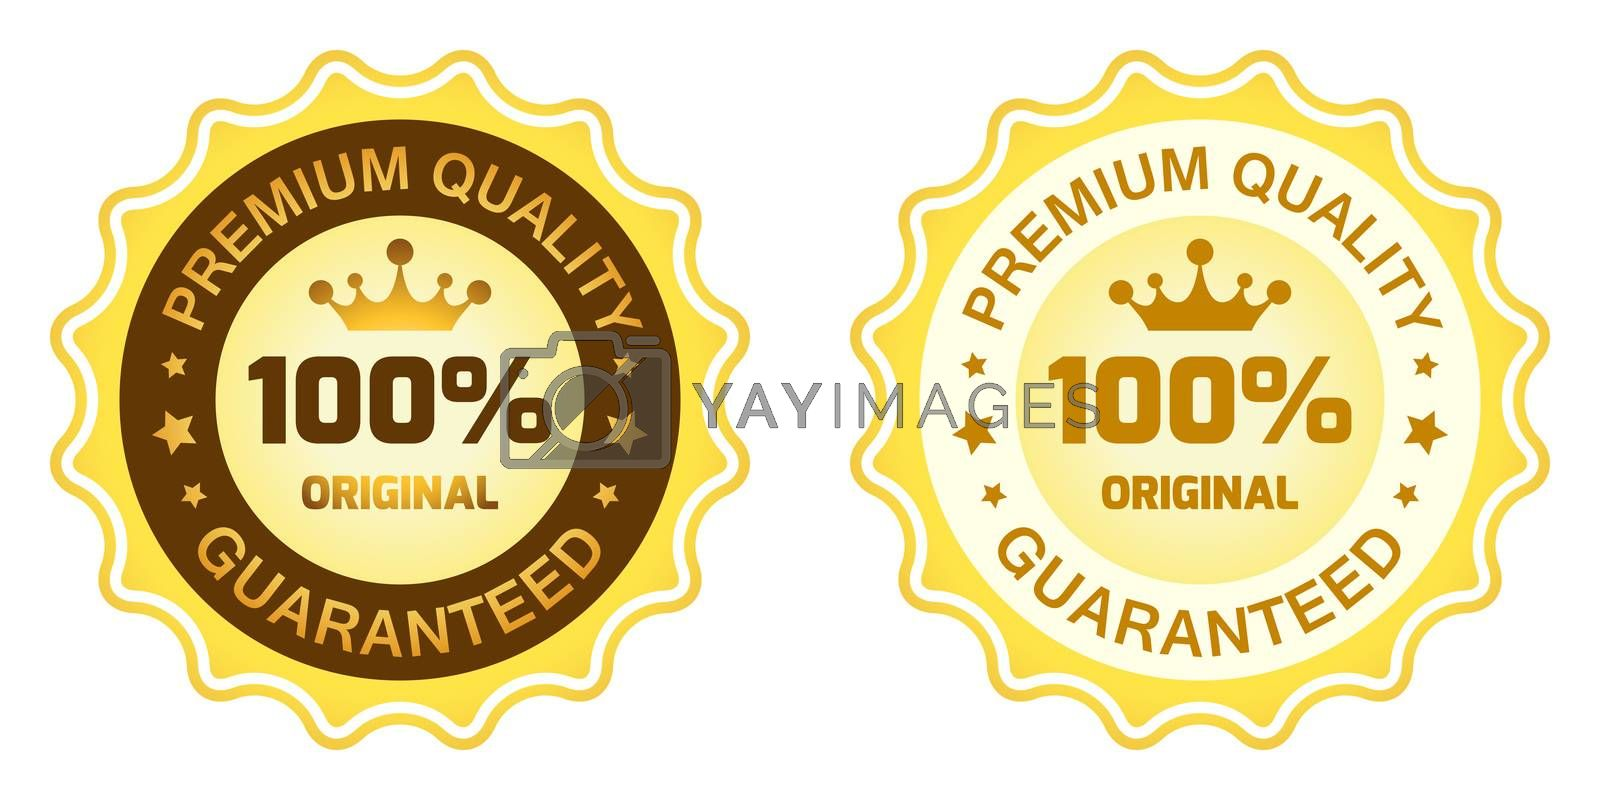 100 Premium Quality Label by WaD